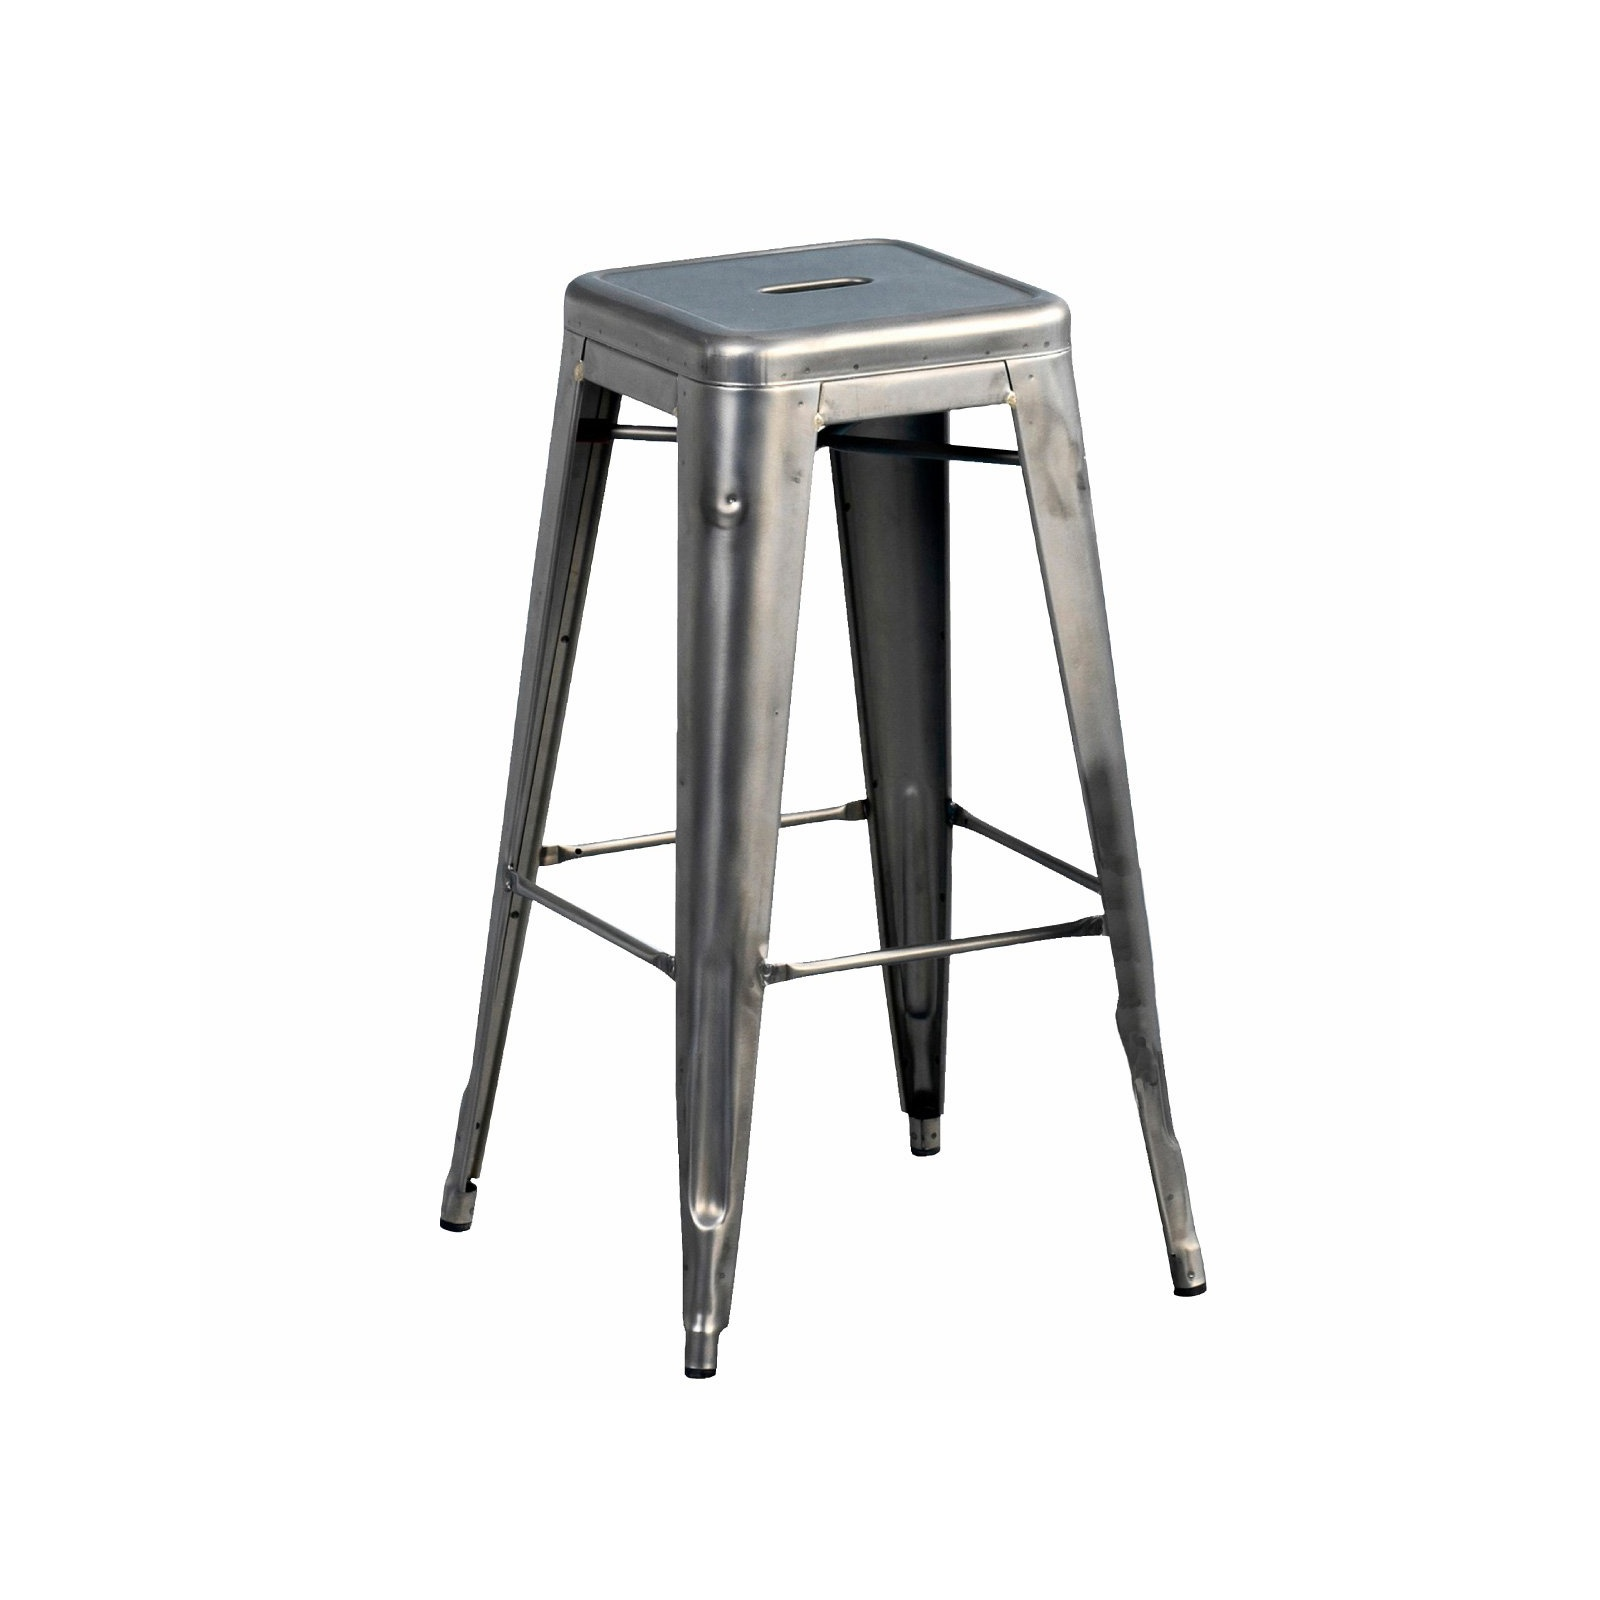 Tabouret Bar Tolix Tabouret Bar Stool Natural Event Trade Show Furniture Rental